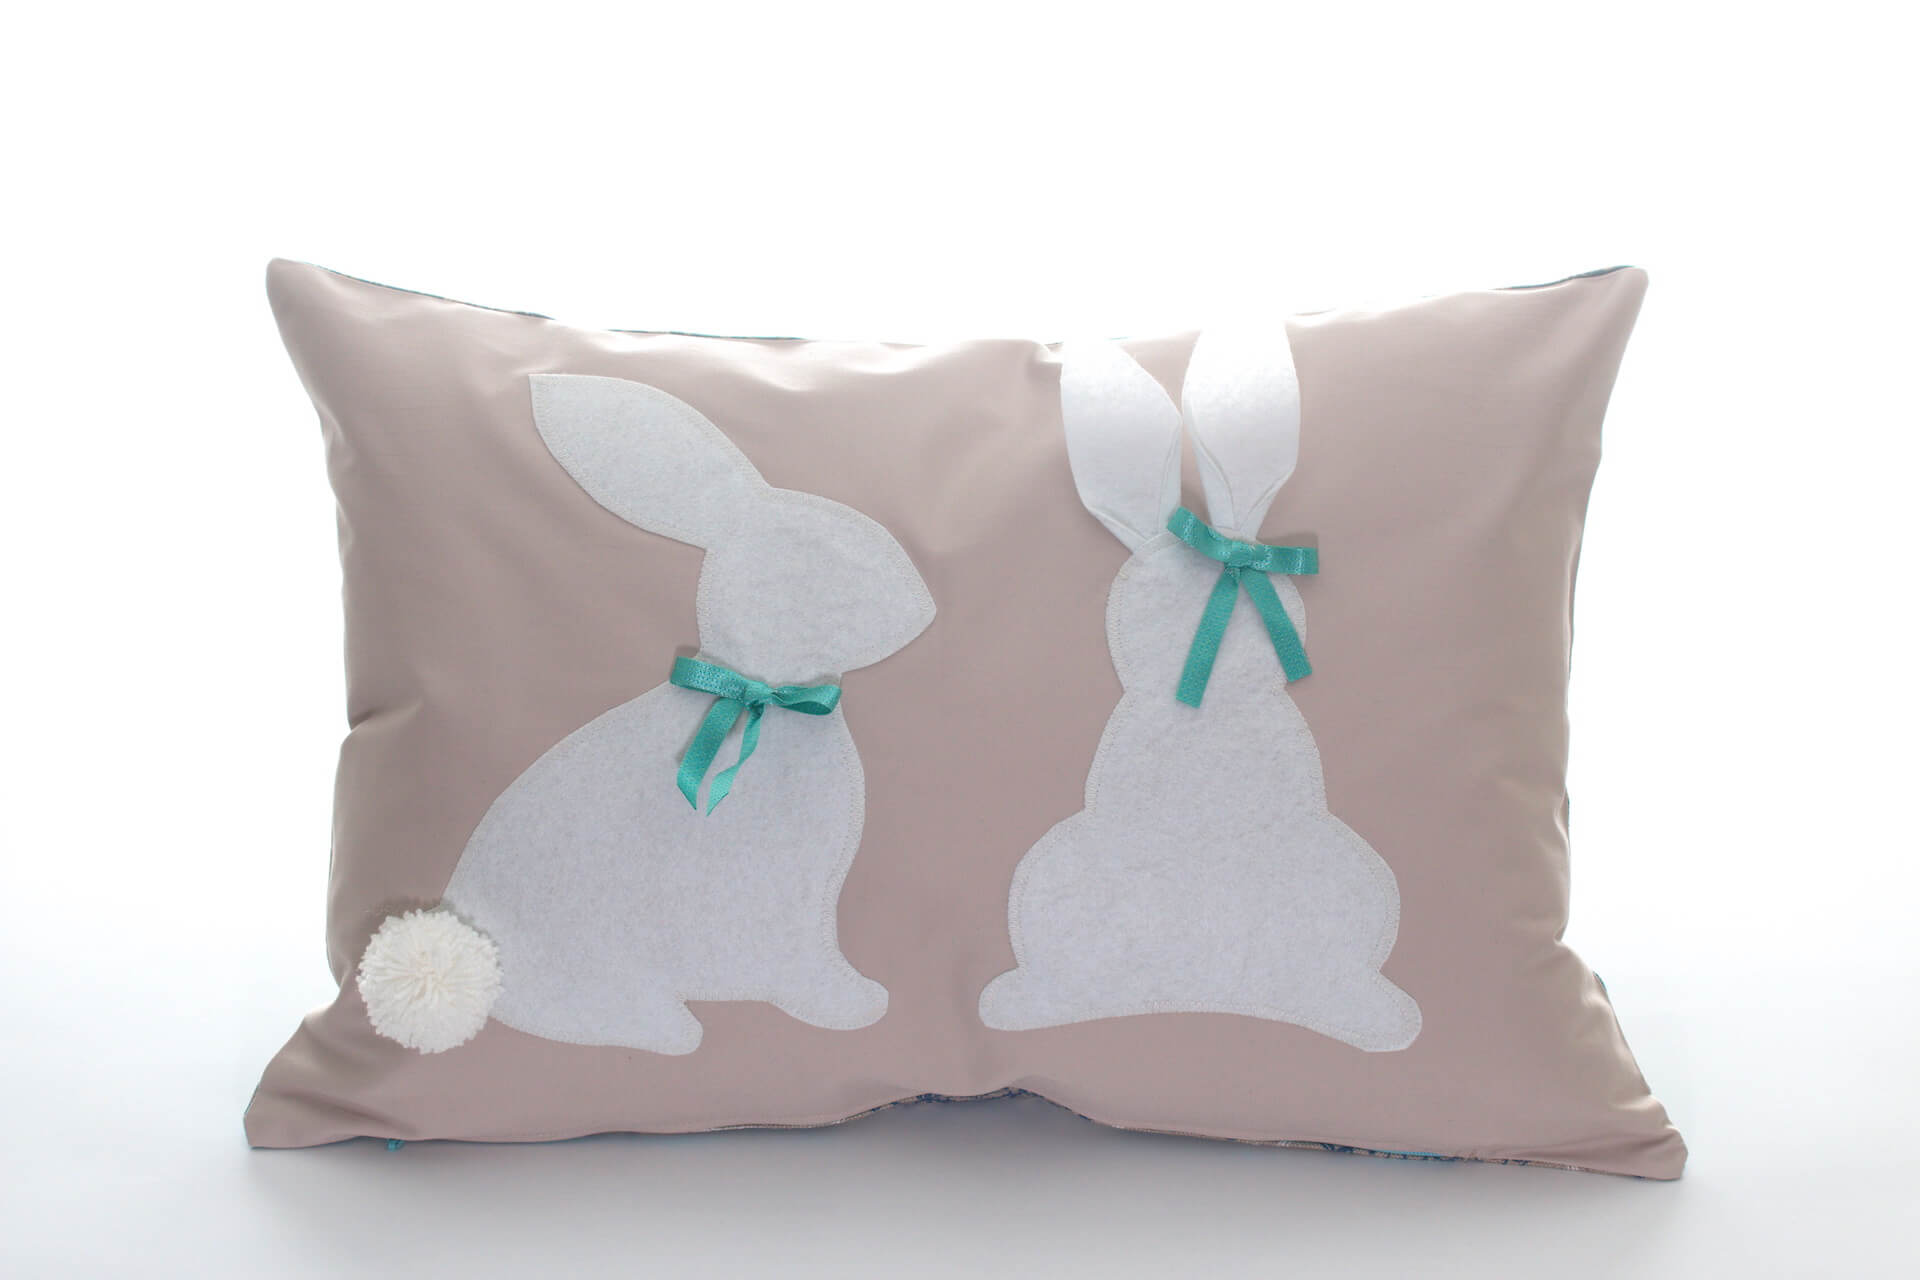 Decorative Cream Pillows : Handmade decorative pillow cream-colored with white bunnies, 50x35 cm - Bowema